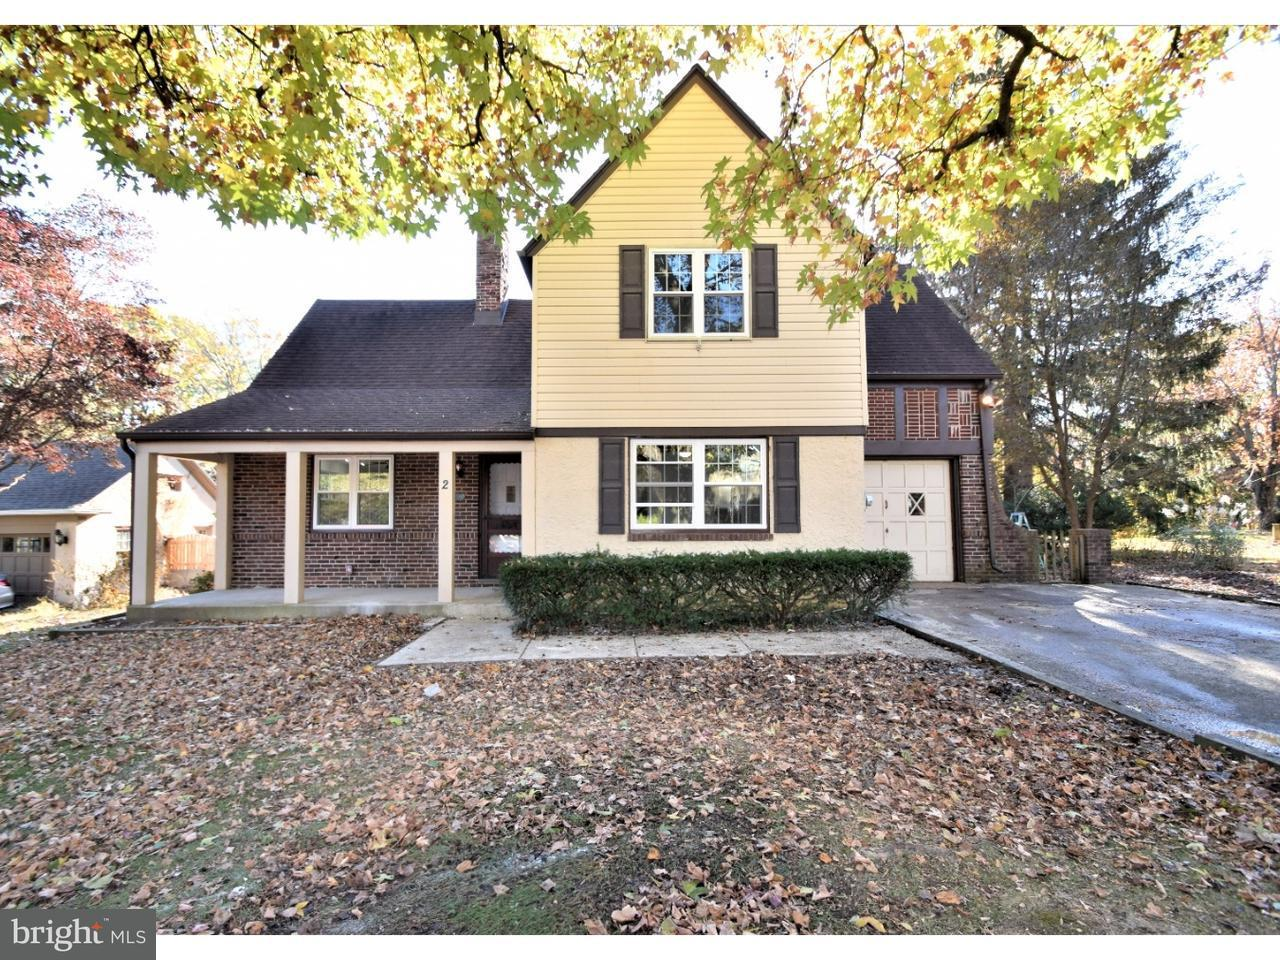 Single Family Home for Sale at 2 ROSELAWN Avenue Lansdowne, Pennsylvania 19050 United States